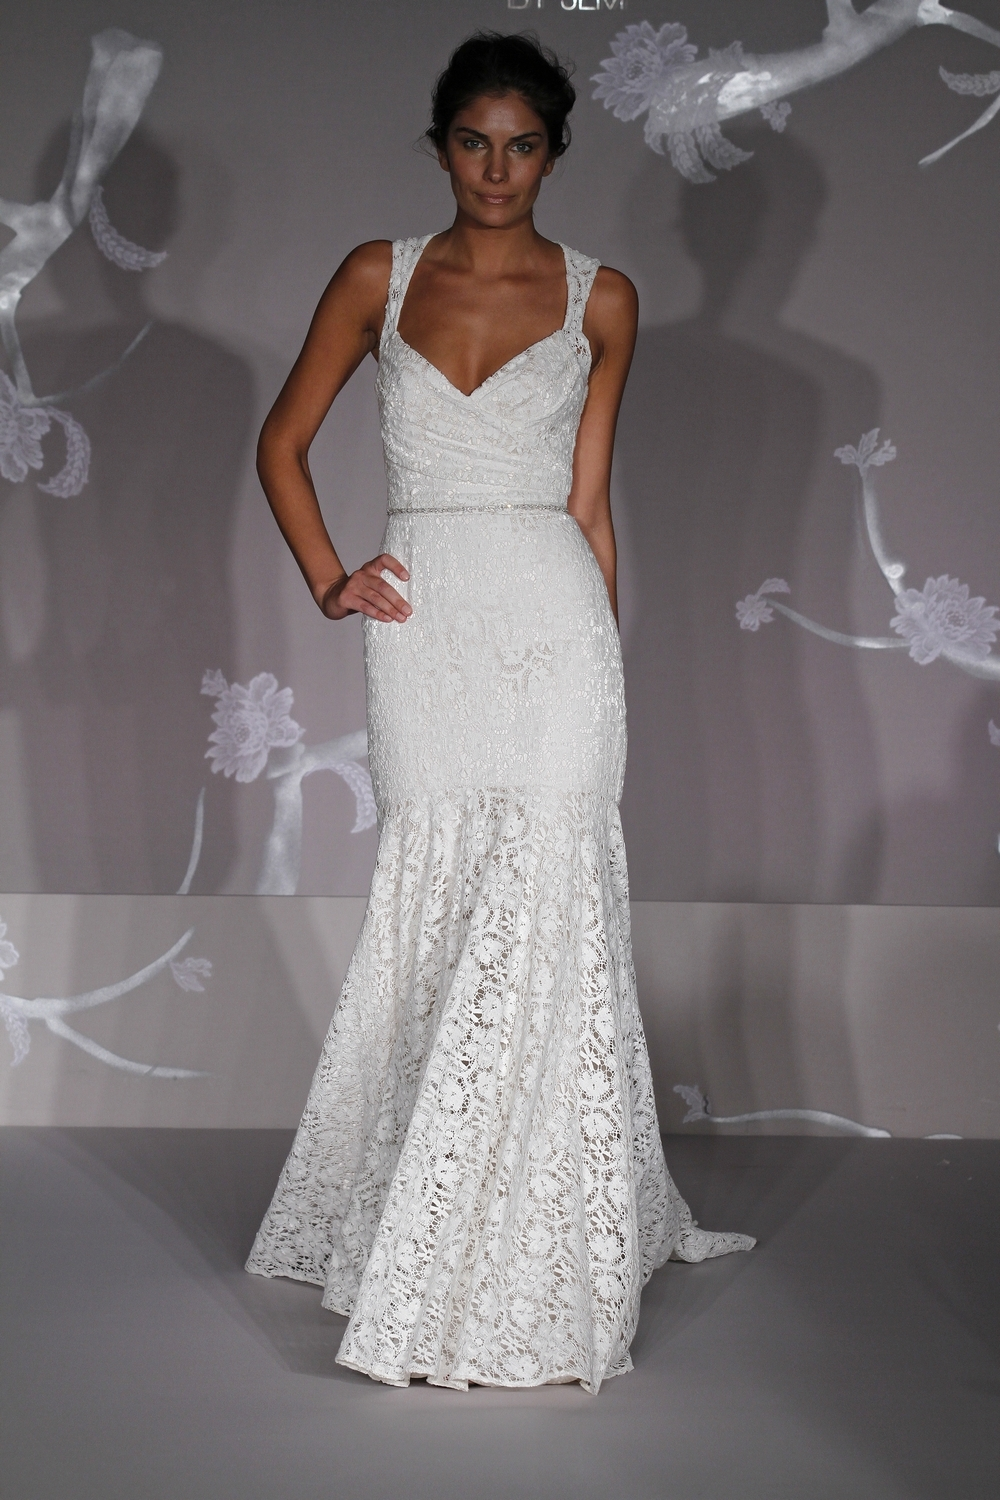 1104-spring-2011-blush-wedding-dress-white-lace-open-back-front.full